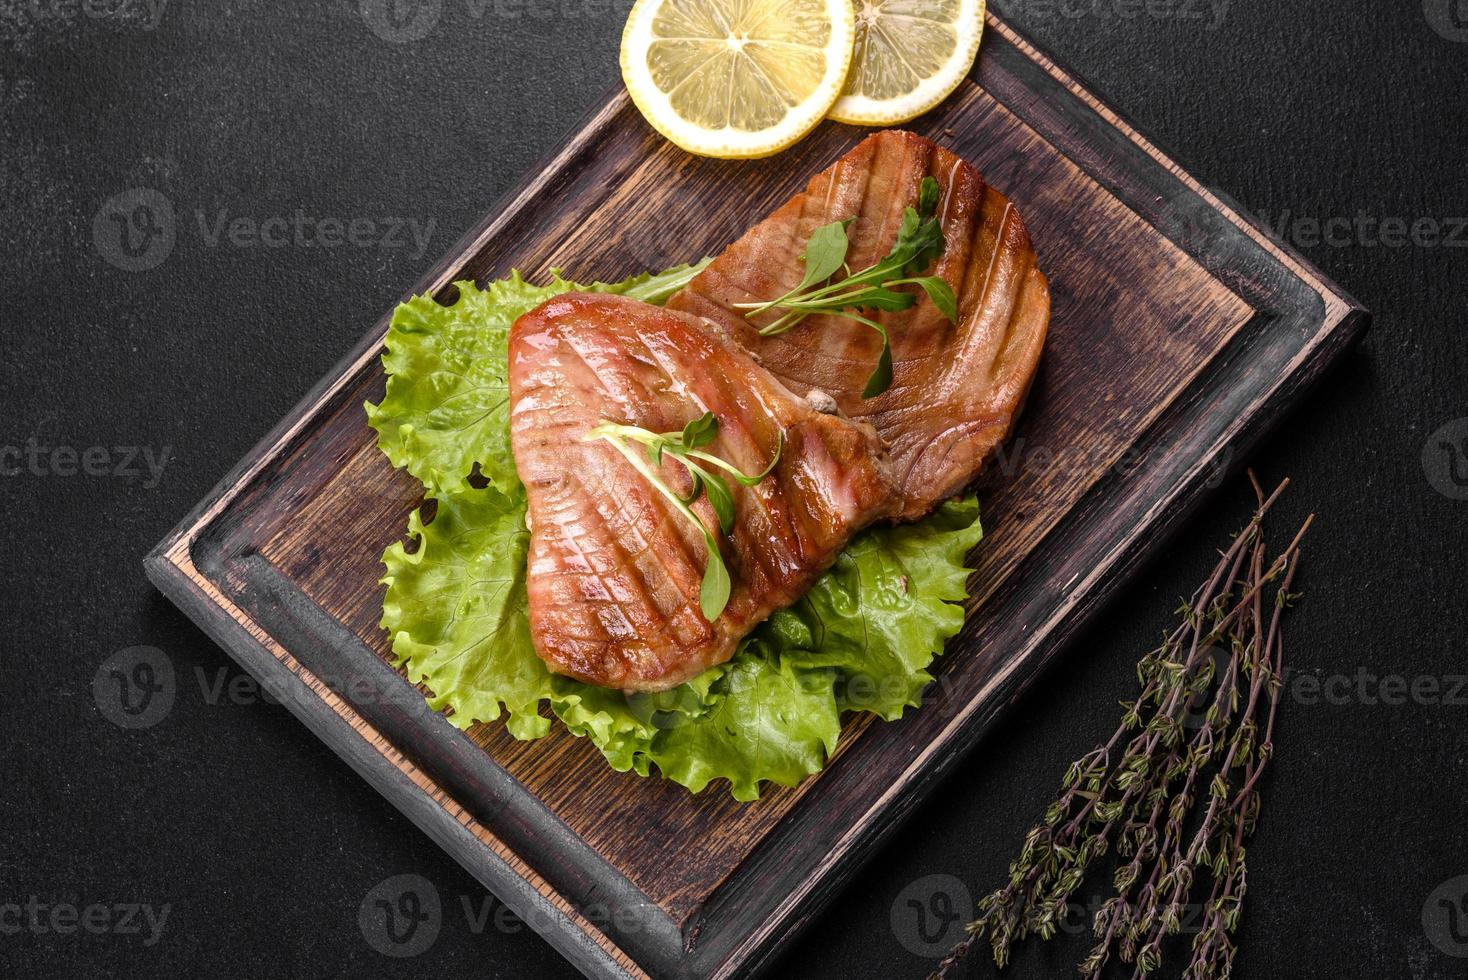 Delicious juicy tuna steak grilled with spices and herbs photo